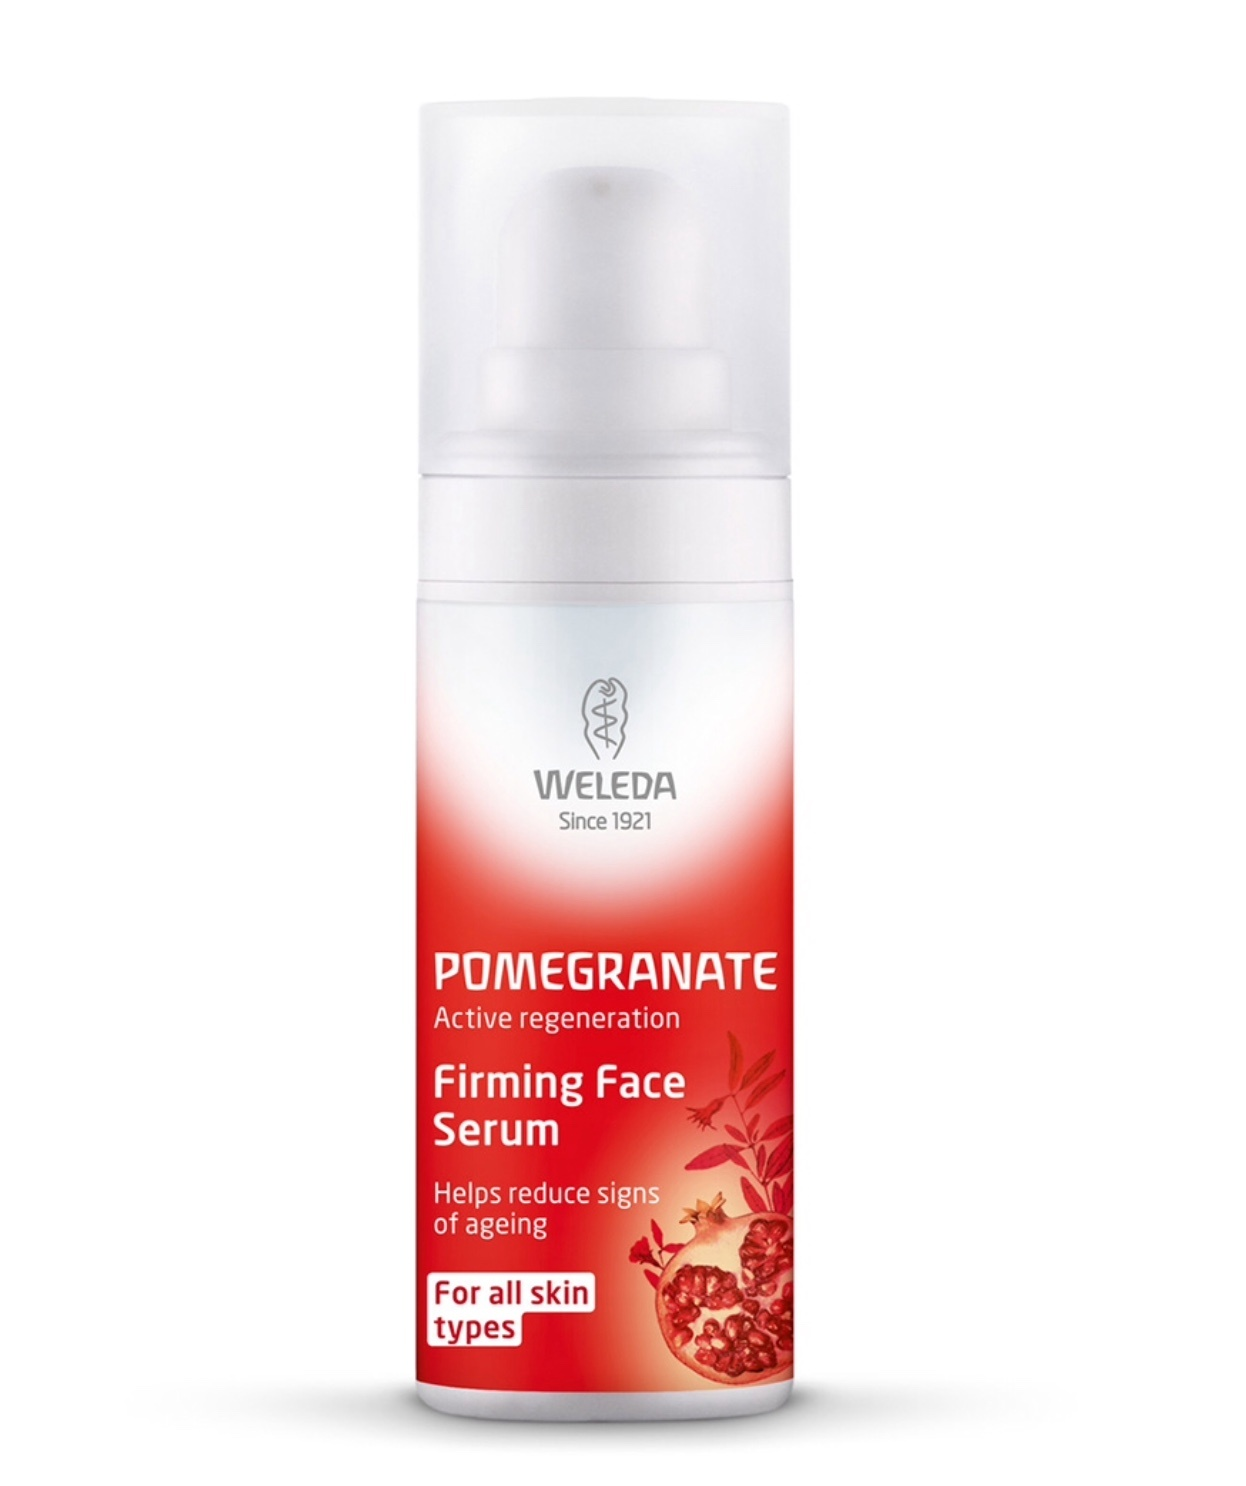 Weleda Pomegranate Firming Face Serum 30ml